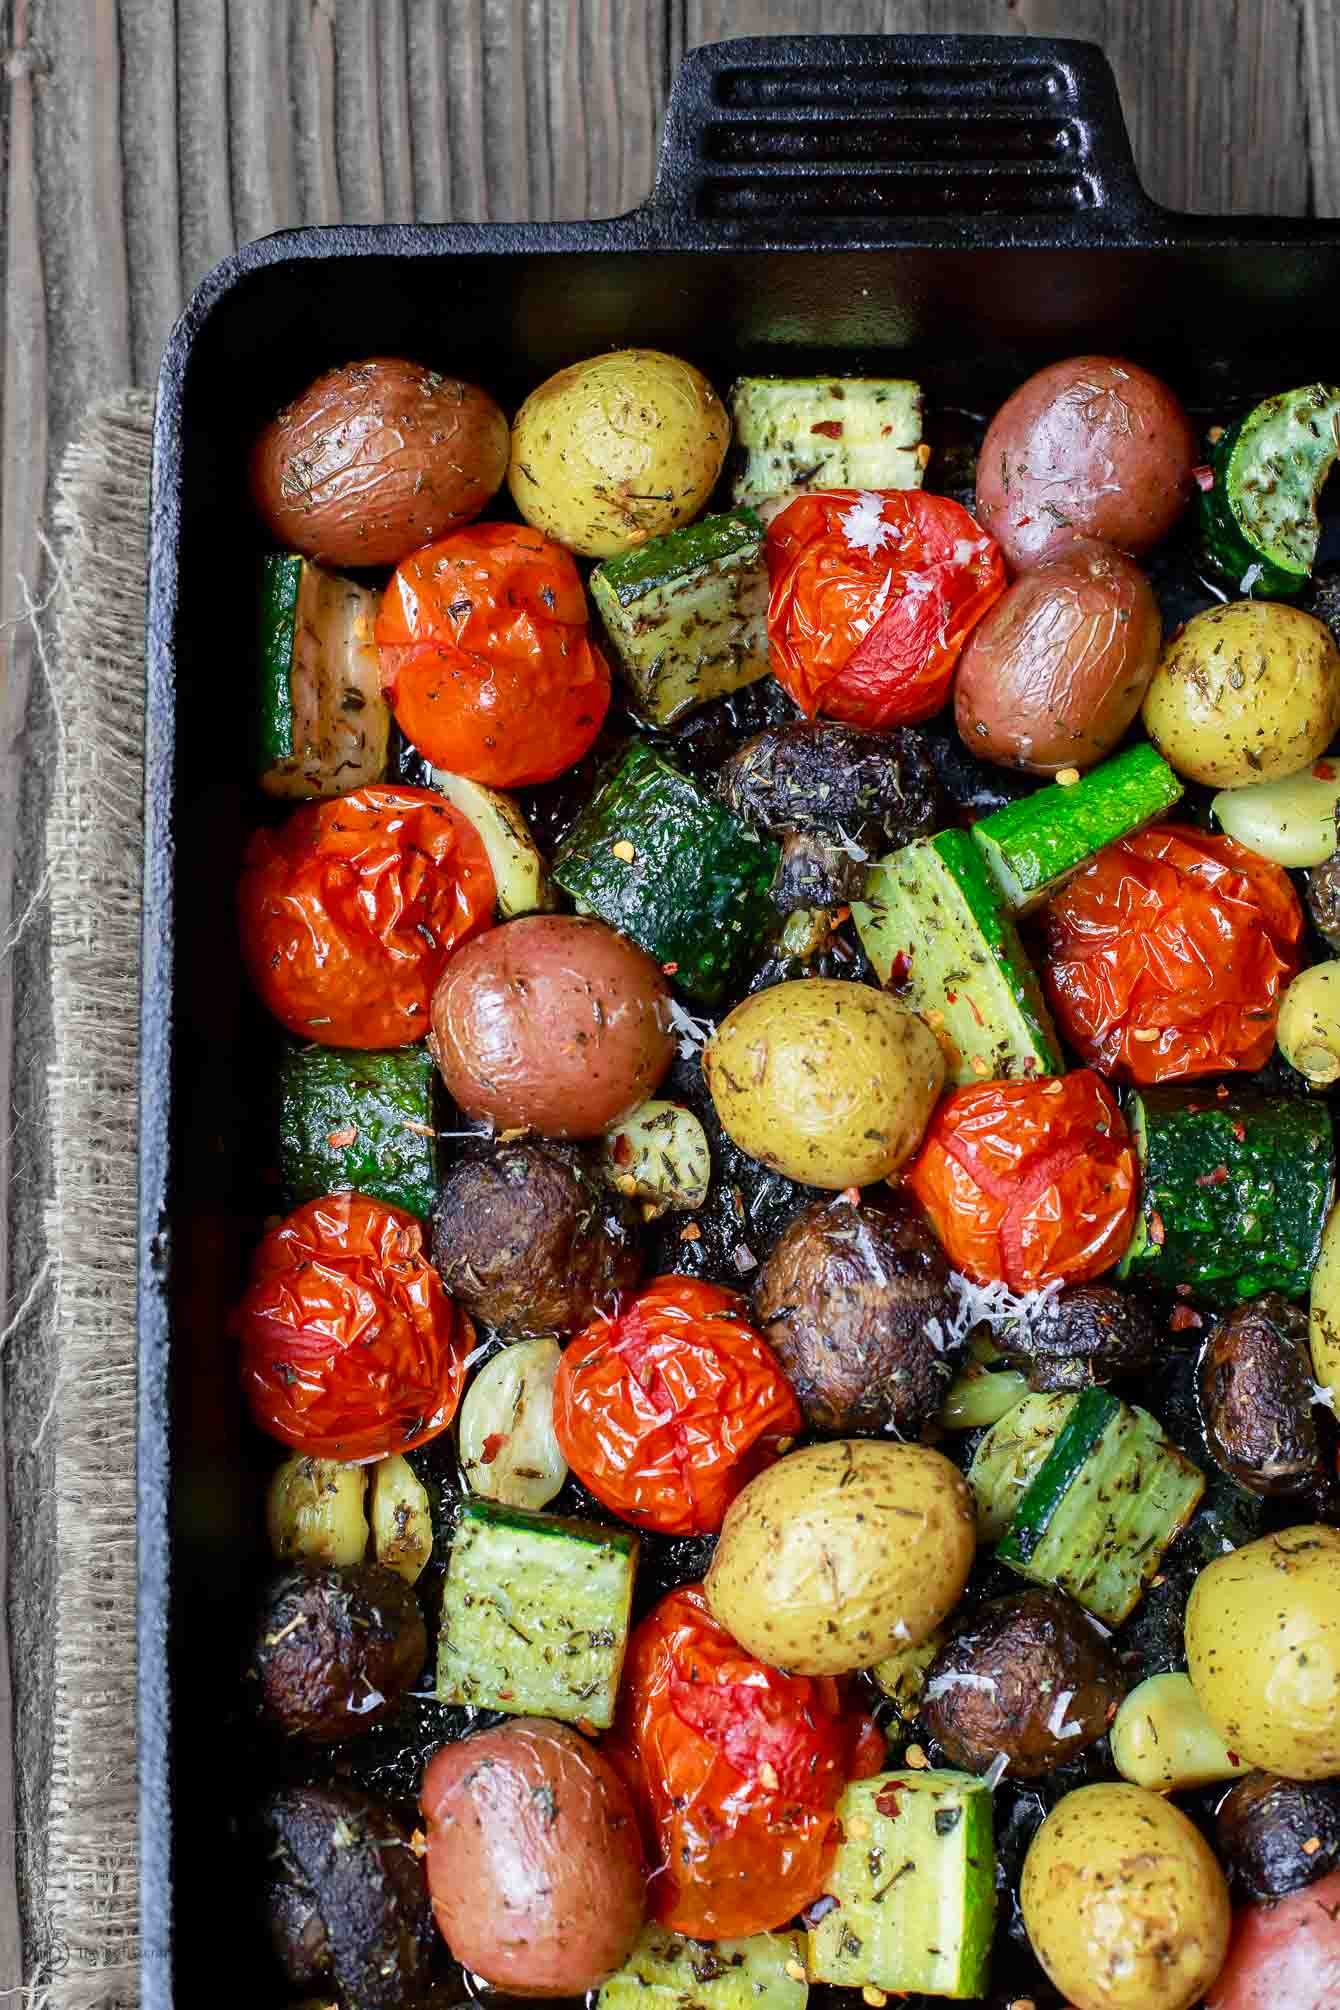 Italian Oven Roasted Vegetables in Cast Iron Pan